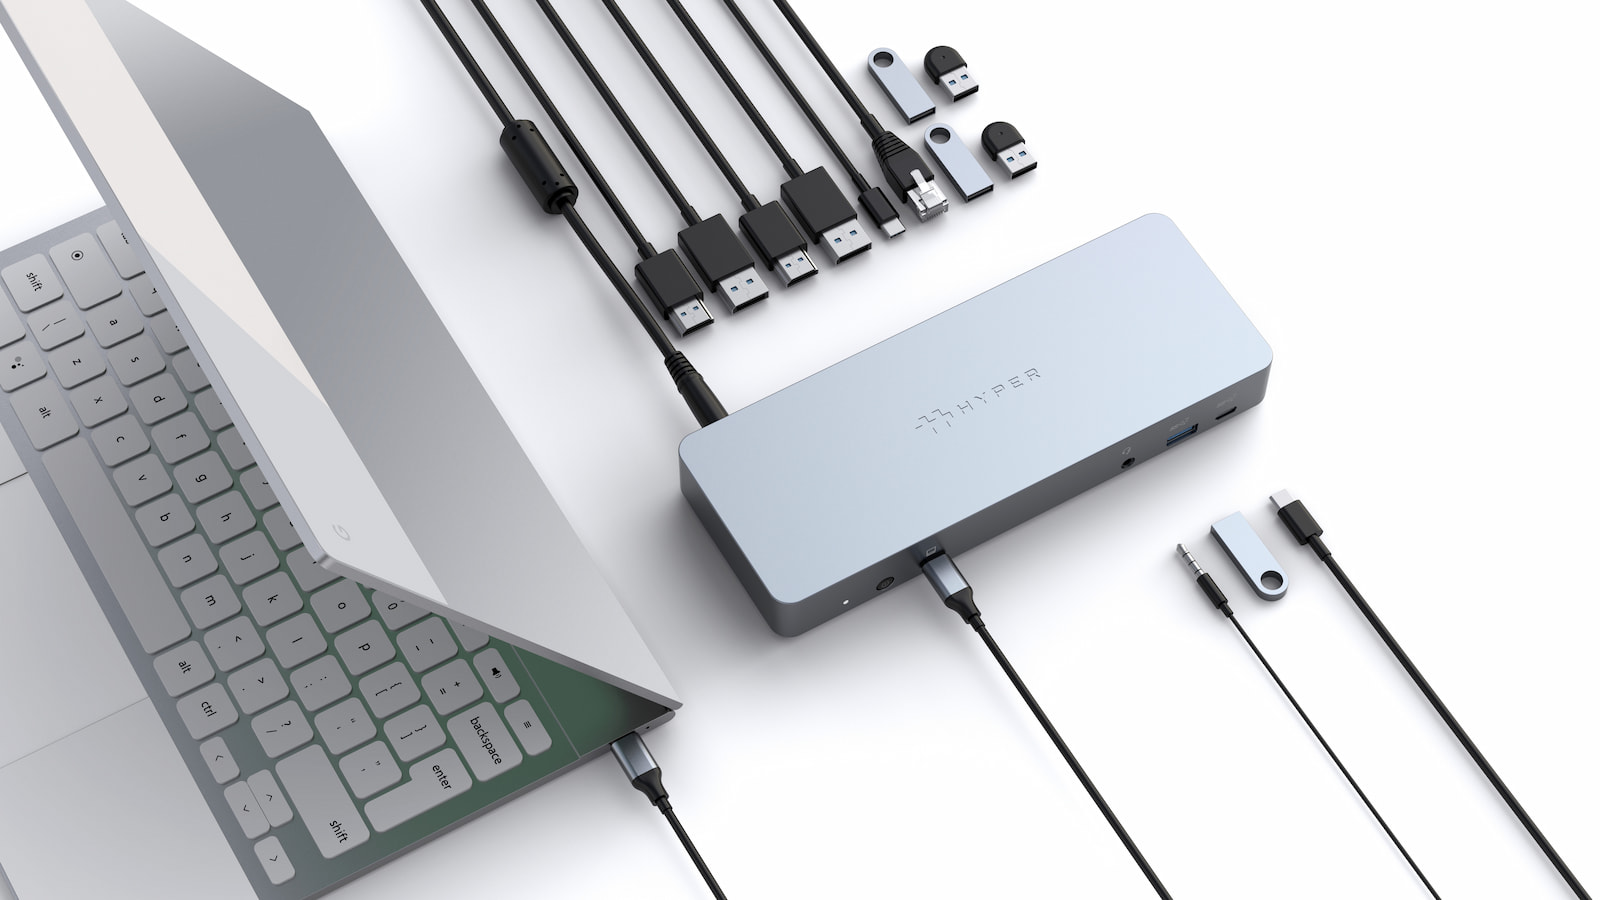 HYPER unveils new Works with Chromebook USB-C lineup